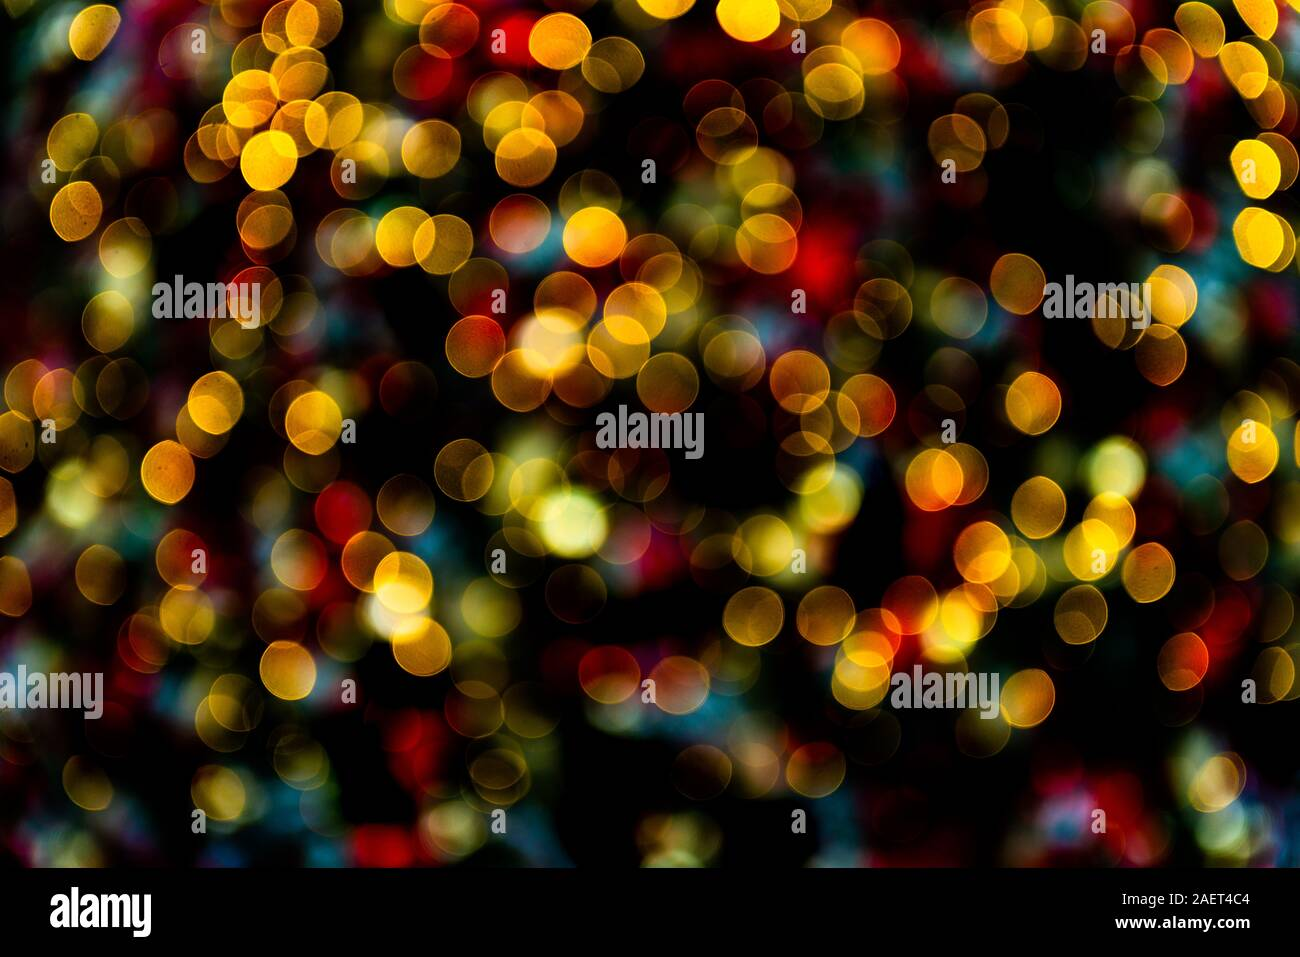 colofrul abstract bokeh made from christmas lights in the shop on black background holiday concept overlay for your images stock photo alamy alamy